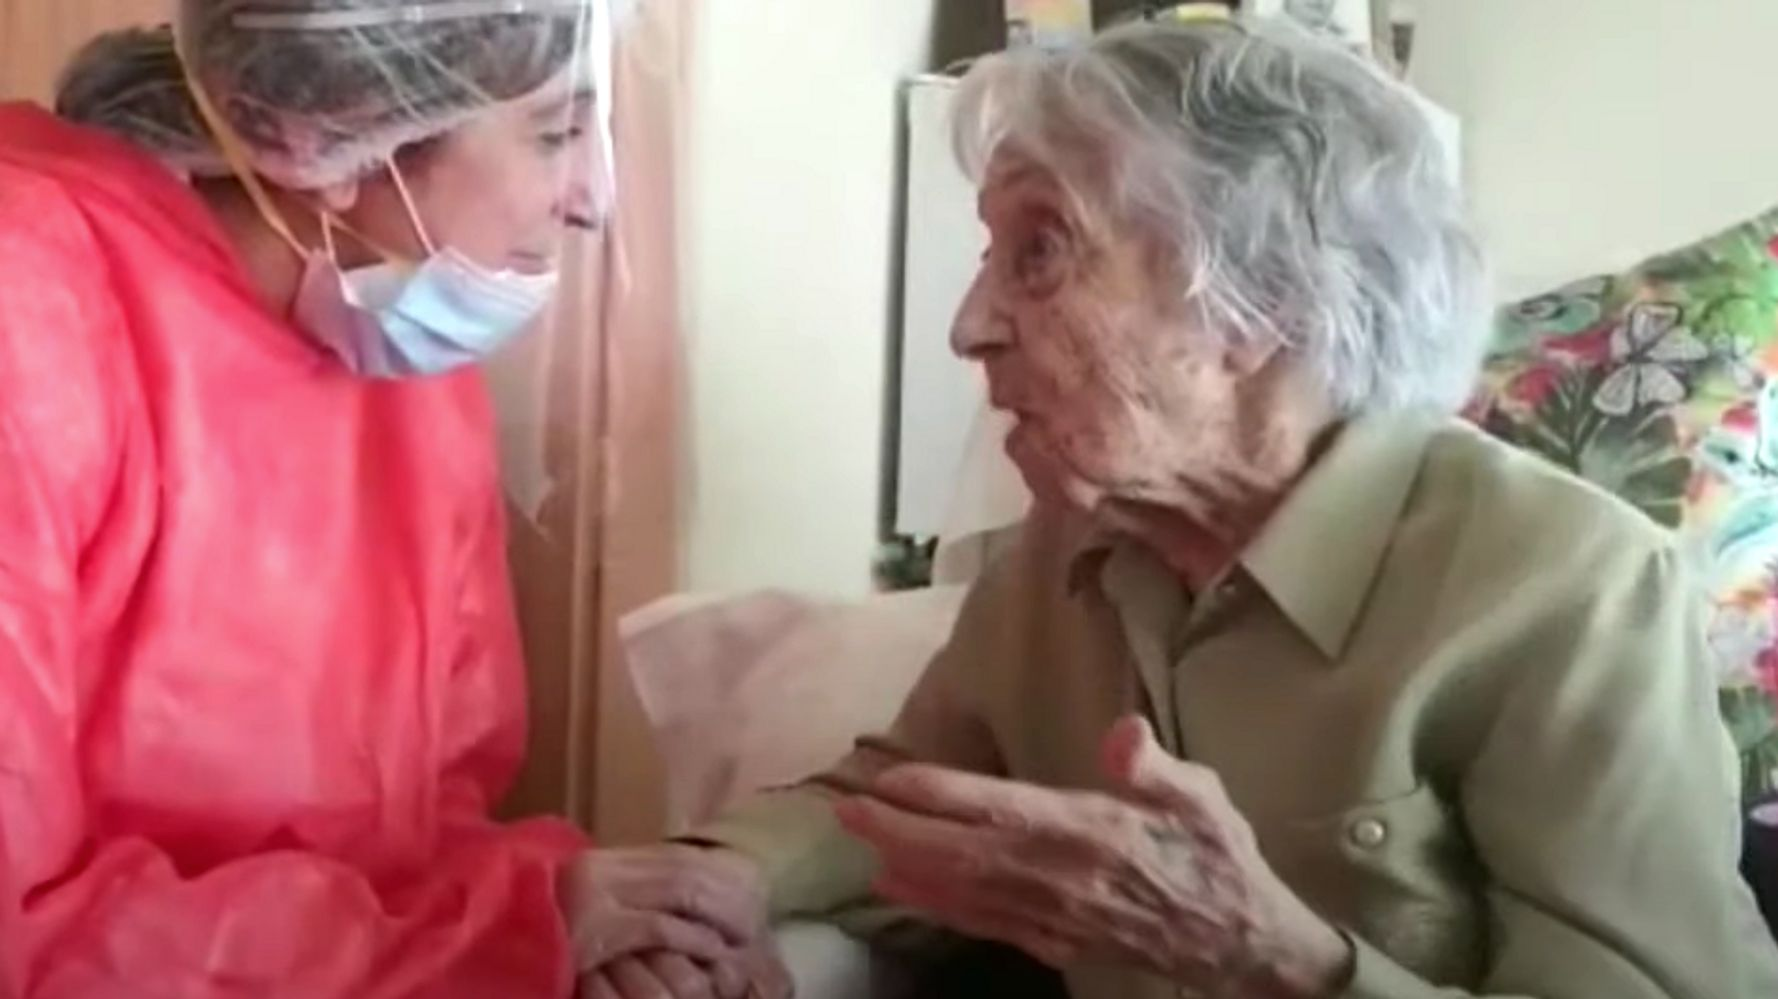 Spain's Oldest Woman Survives Coronavirus, Says Humanity Needs 'A New Order' 1